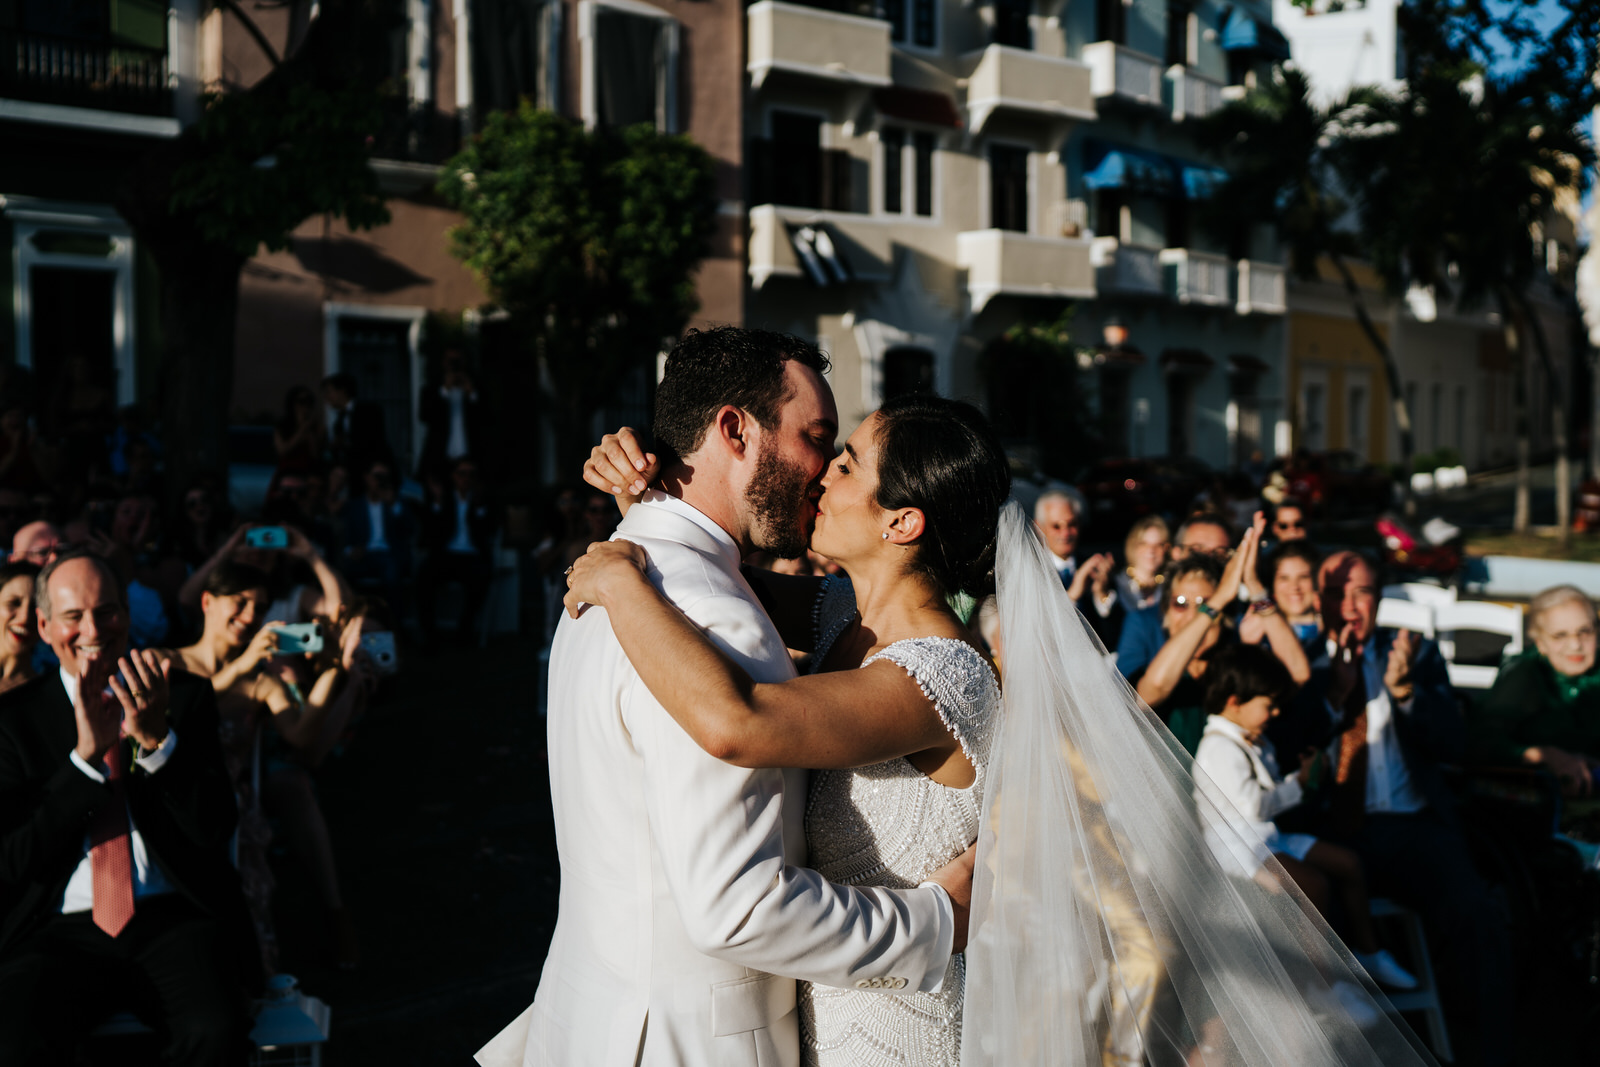 Bride and groom exchange their first kiss as husband and wife during their wedding ceremon with beautiful sunshine weather